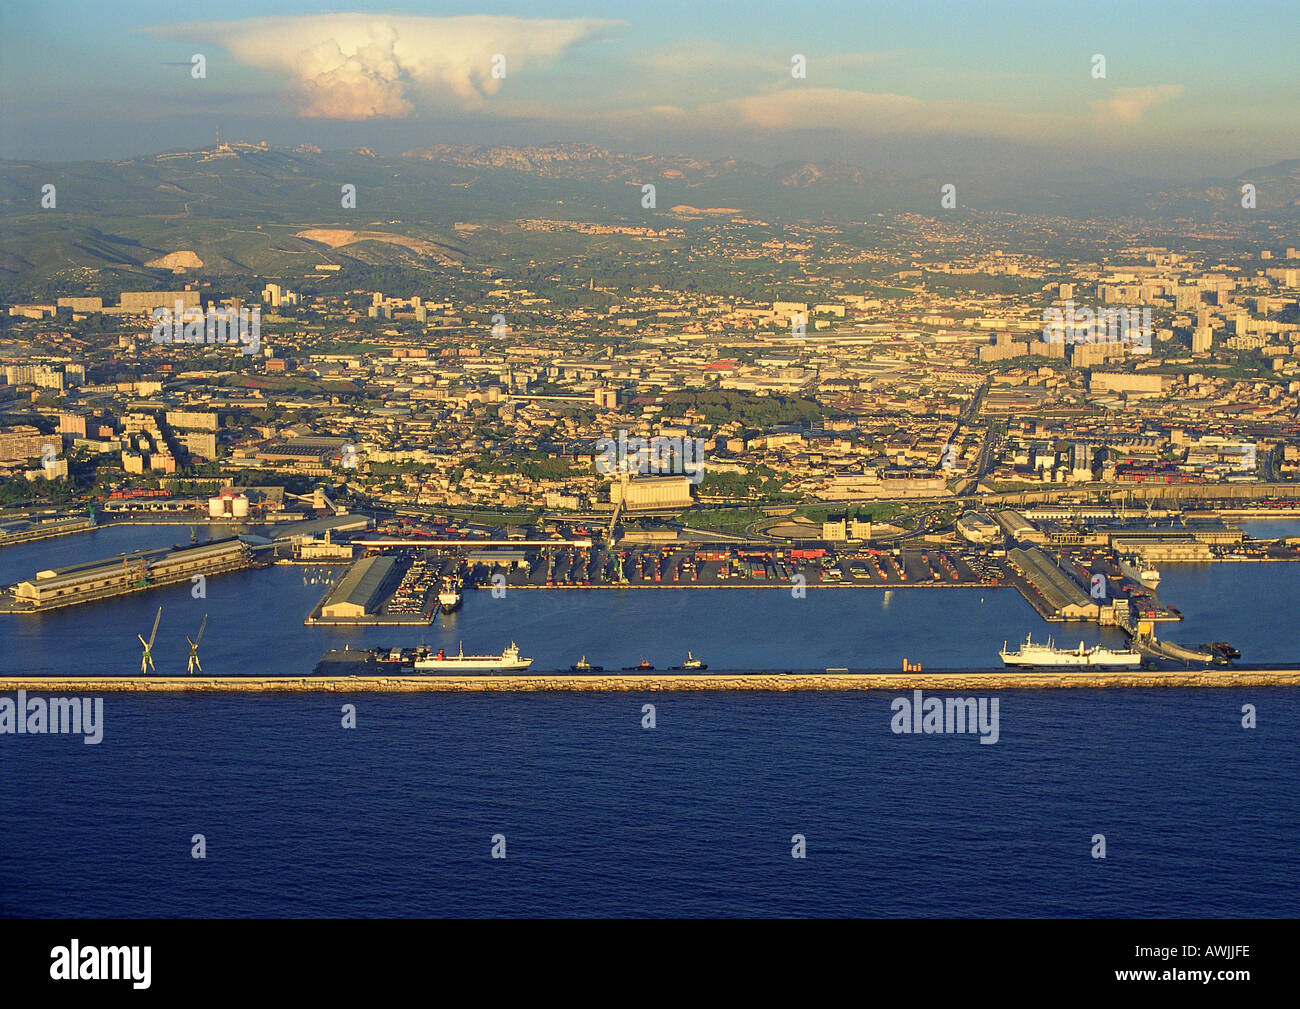 Aerial view of port city - Stock Image